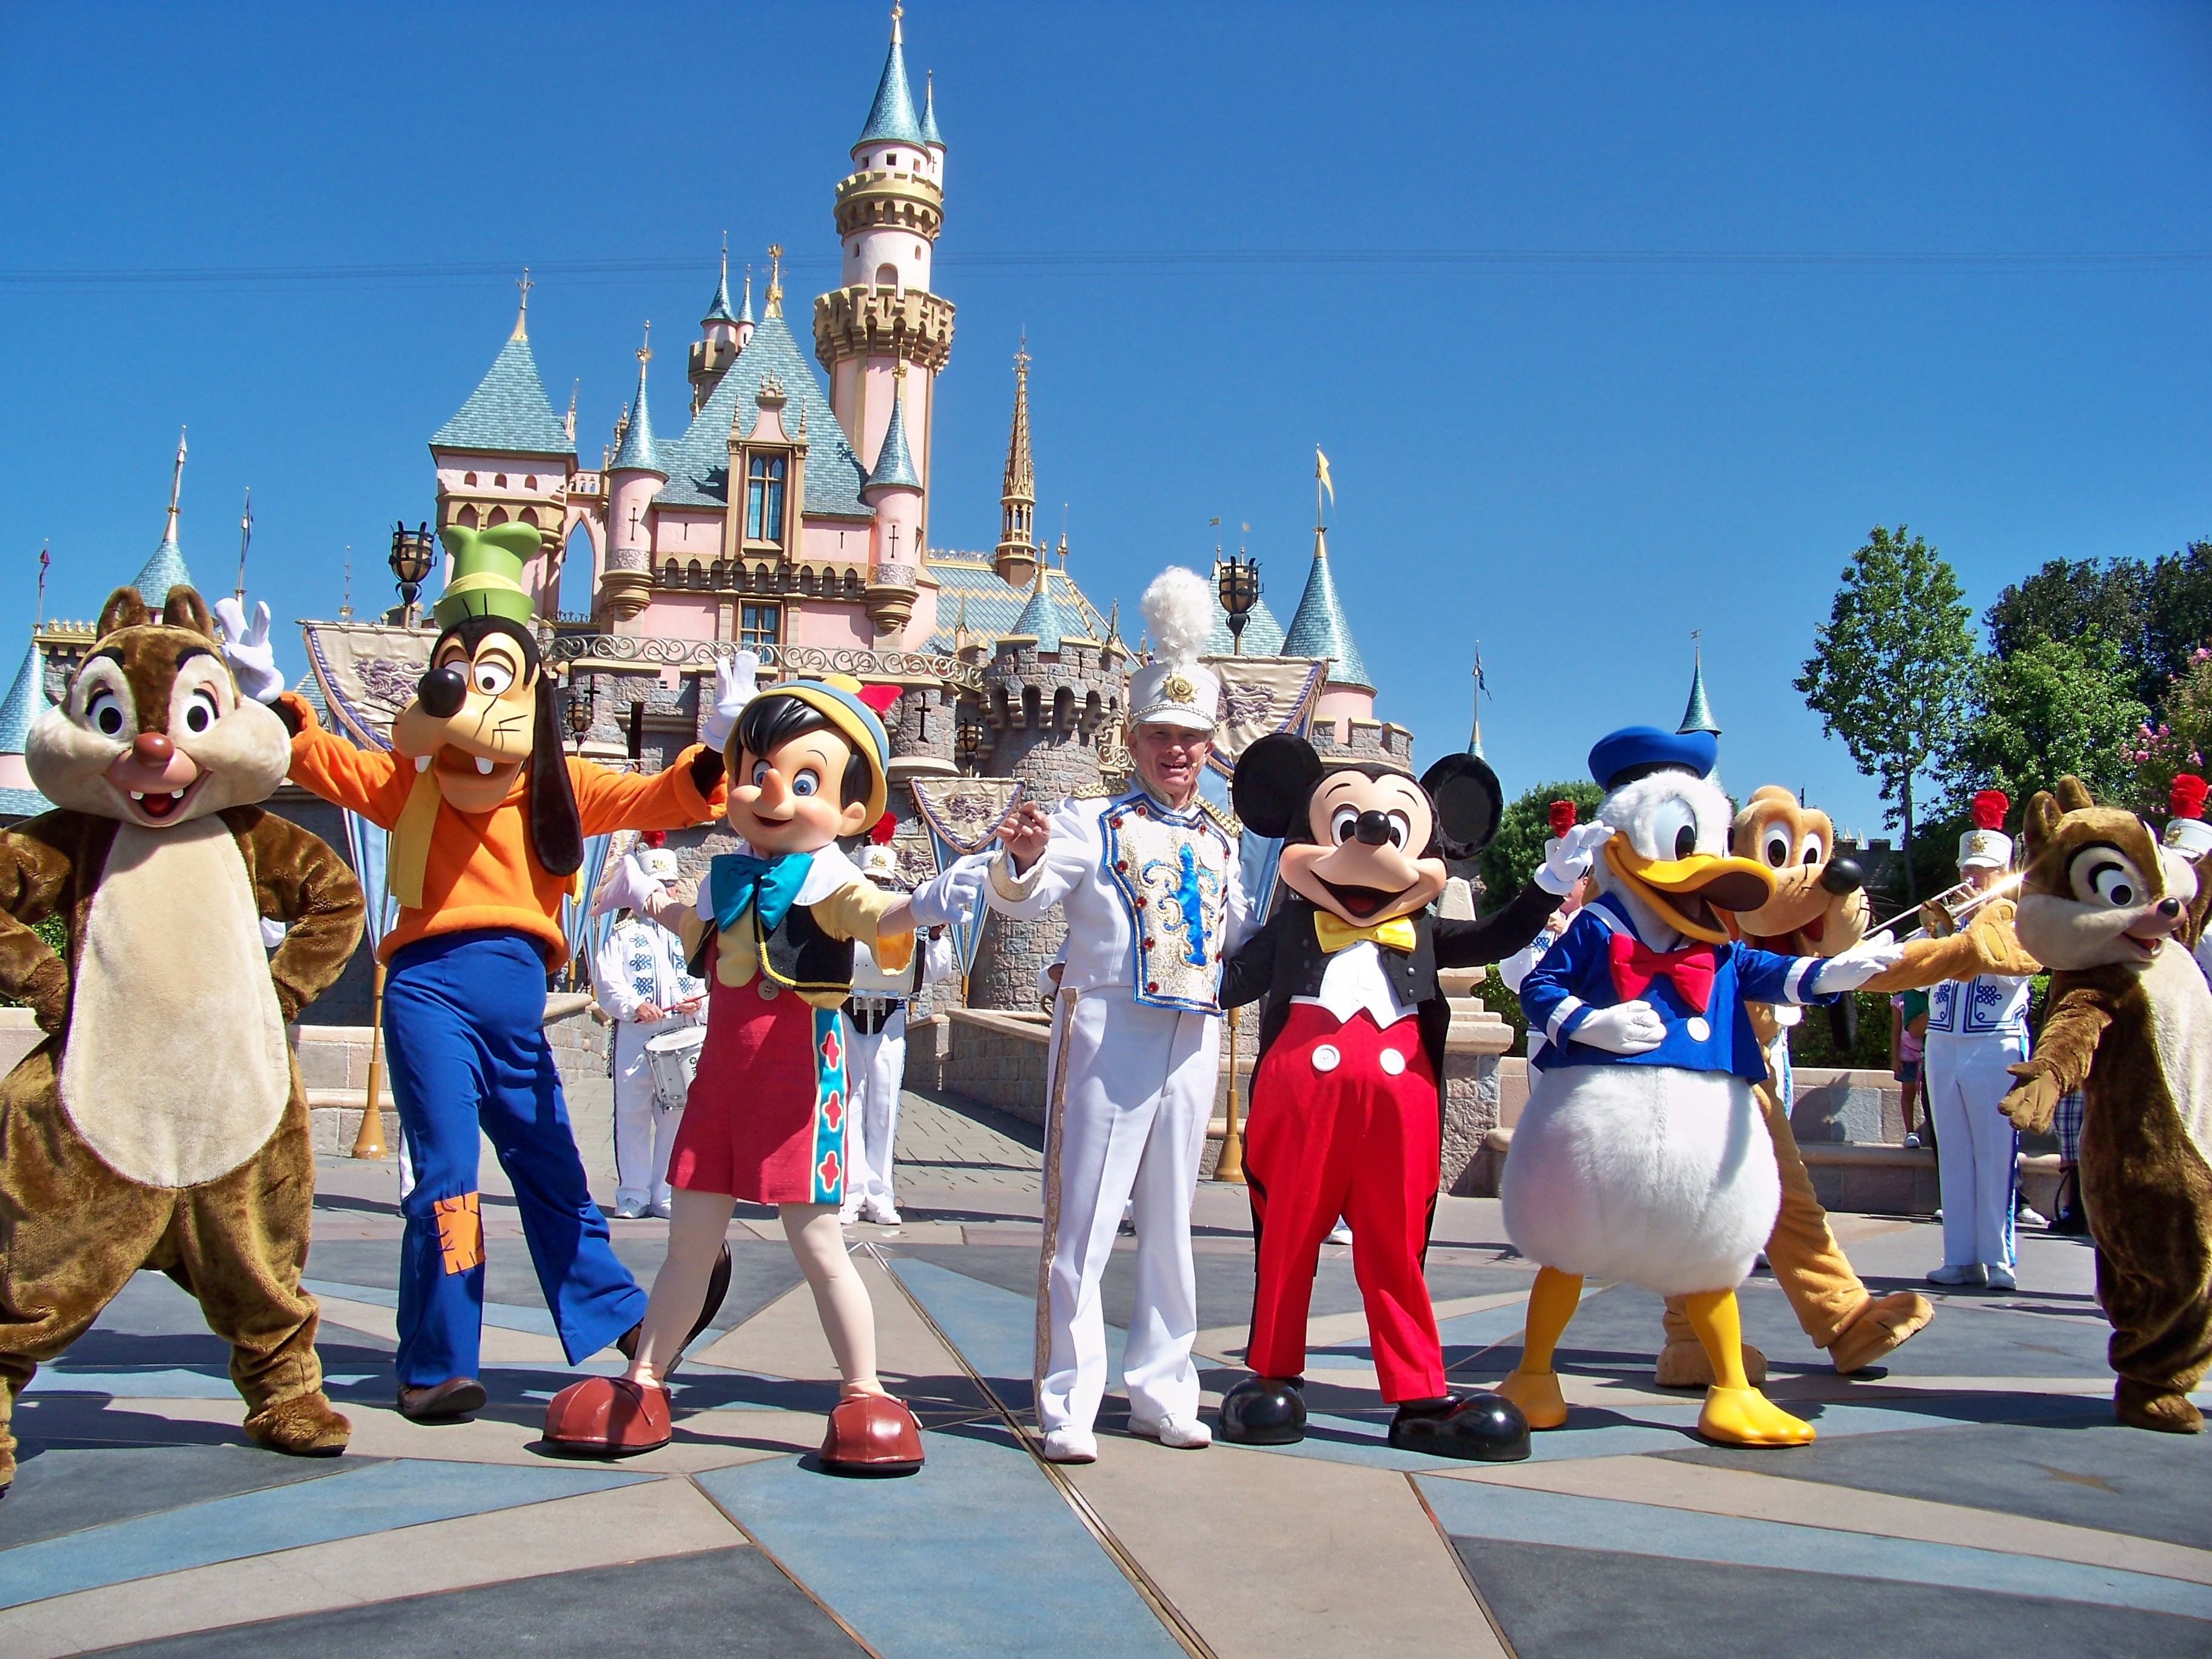 Road Trip to Disneyland: The Happiest Place on Earth